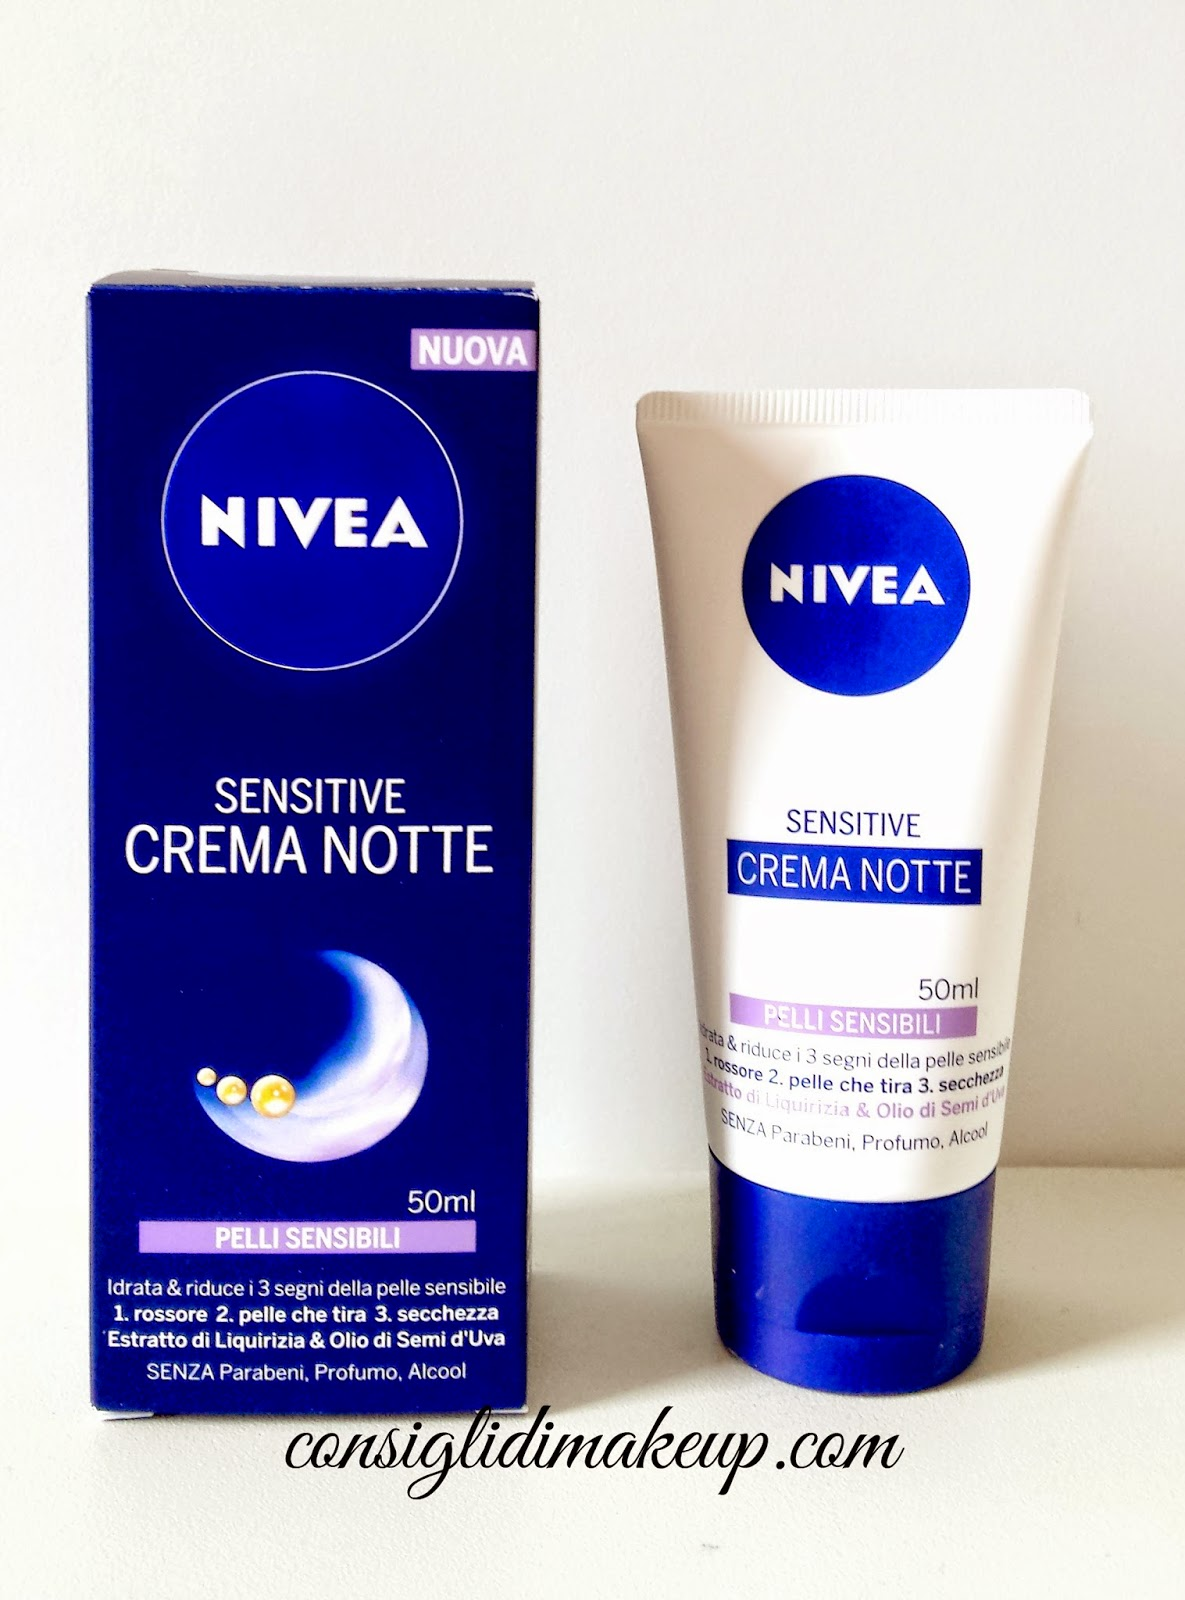 NIVEA Sensitive Crema Notte